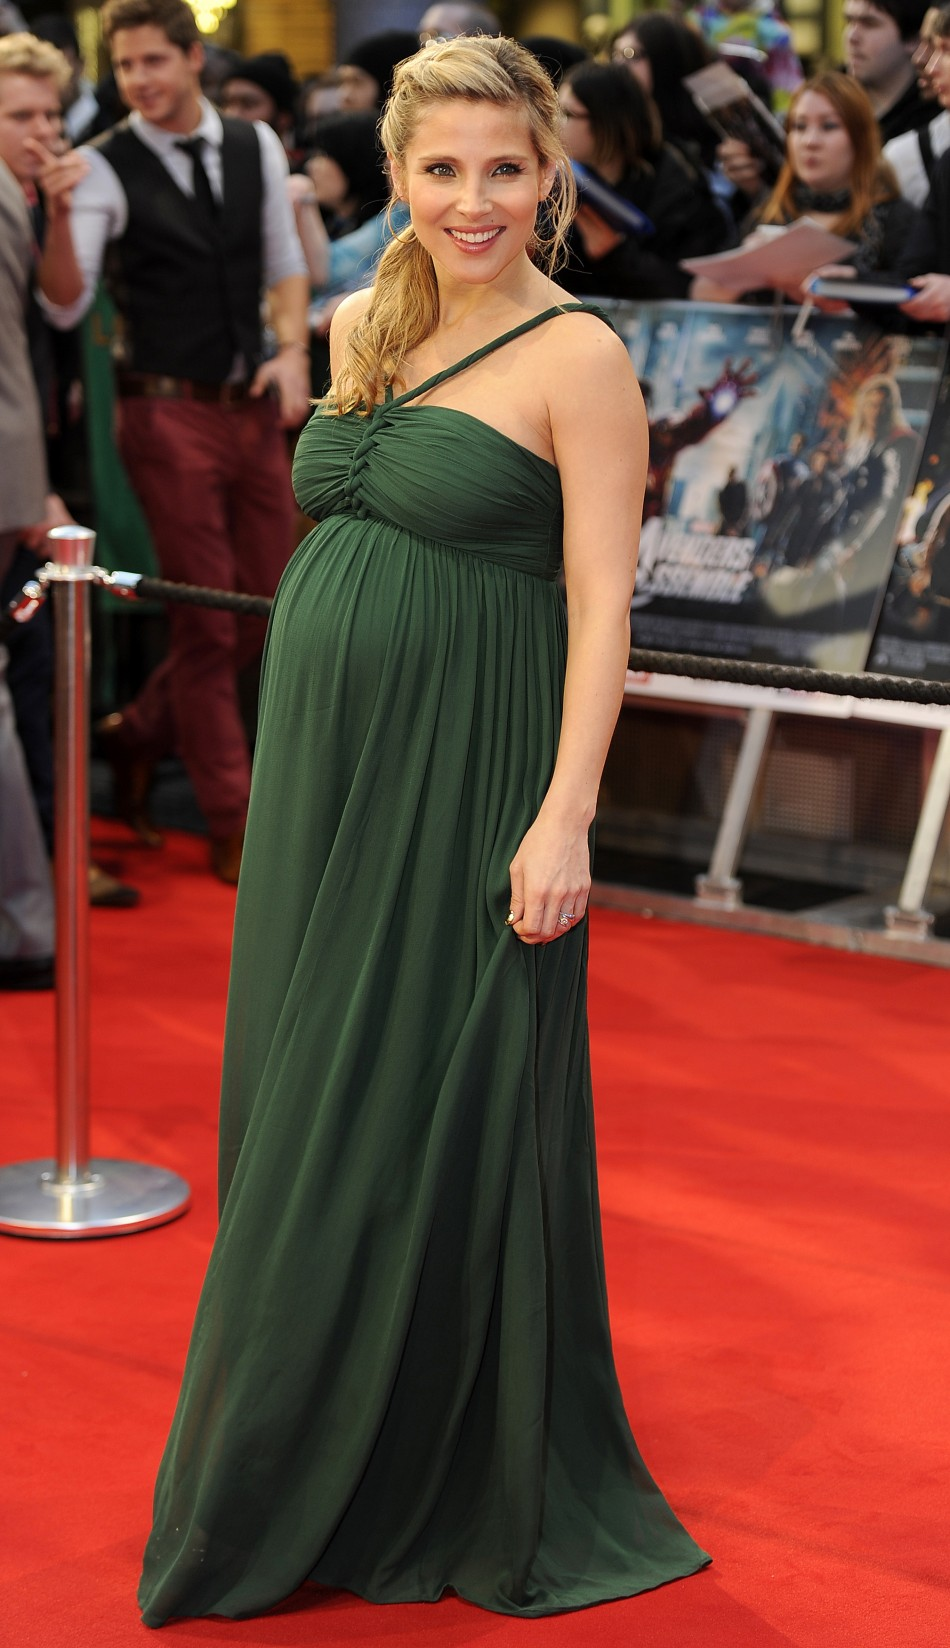 Scarlett Johansson Smoulders in European 'Avengers' Premiere Red Carpet